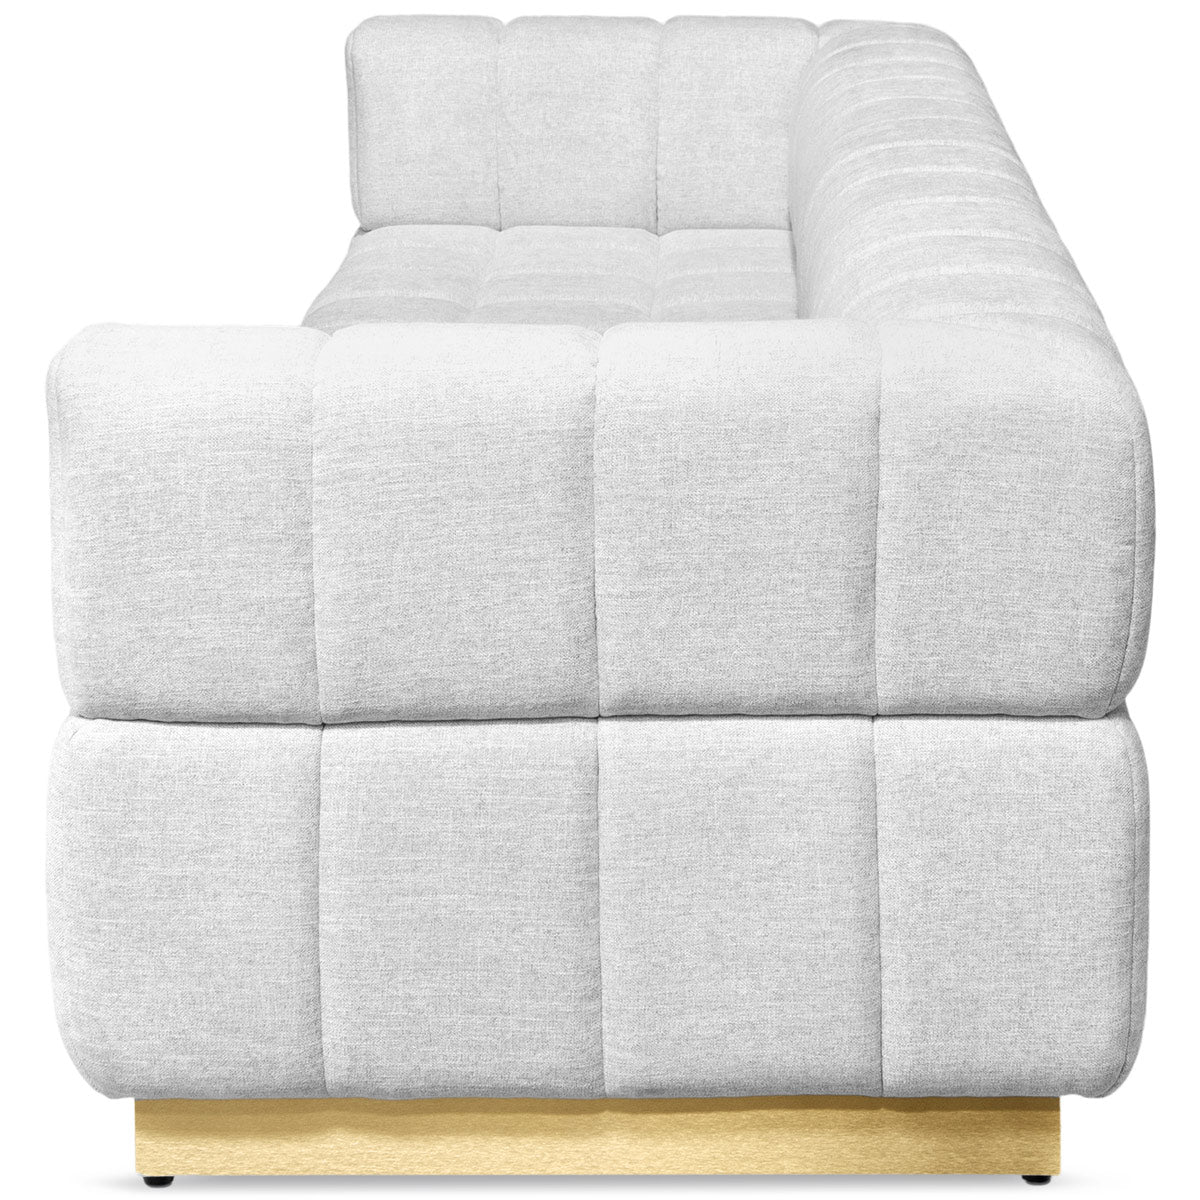 Continental Sofa in Linen